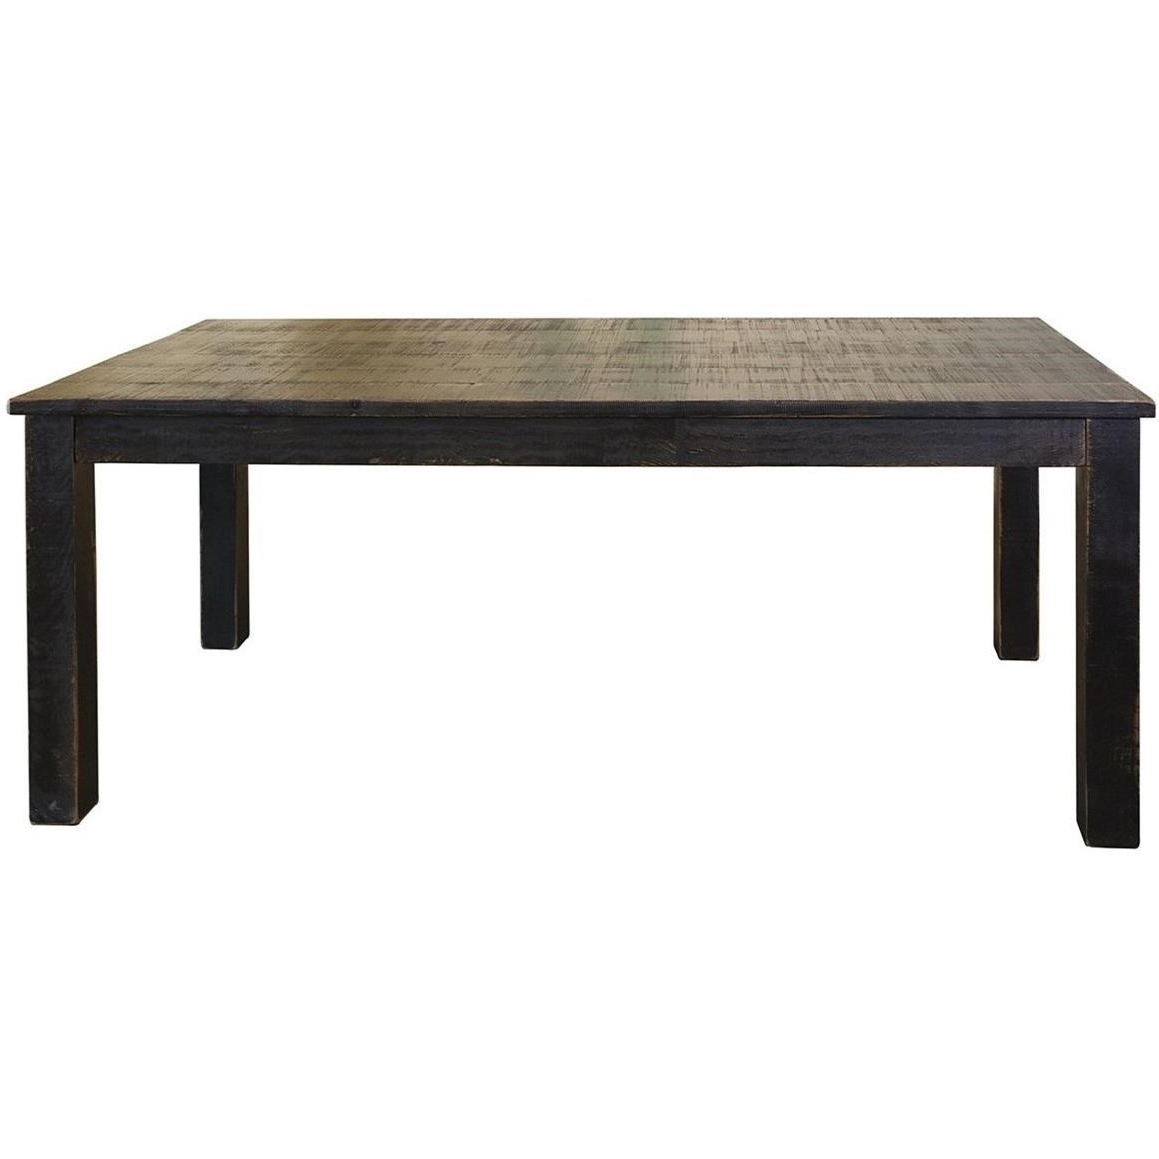 Famous Pueblo Rustic Wood Dining Tableinternational Furniture Direct At Dunk &  Bright Furniture With Wood Dining Tables (View 9 of 25)